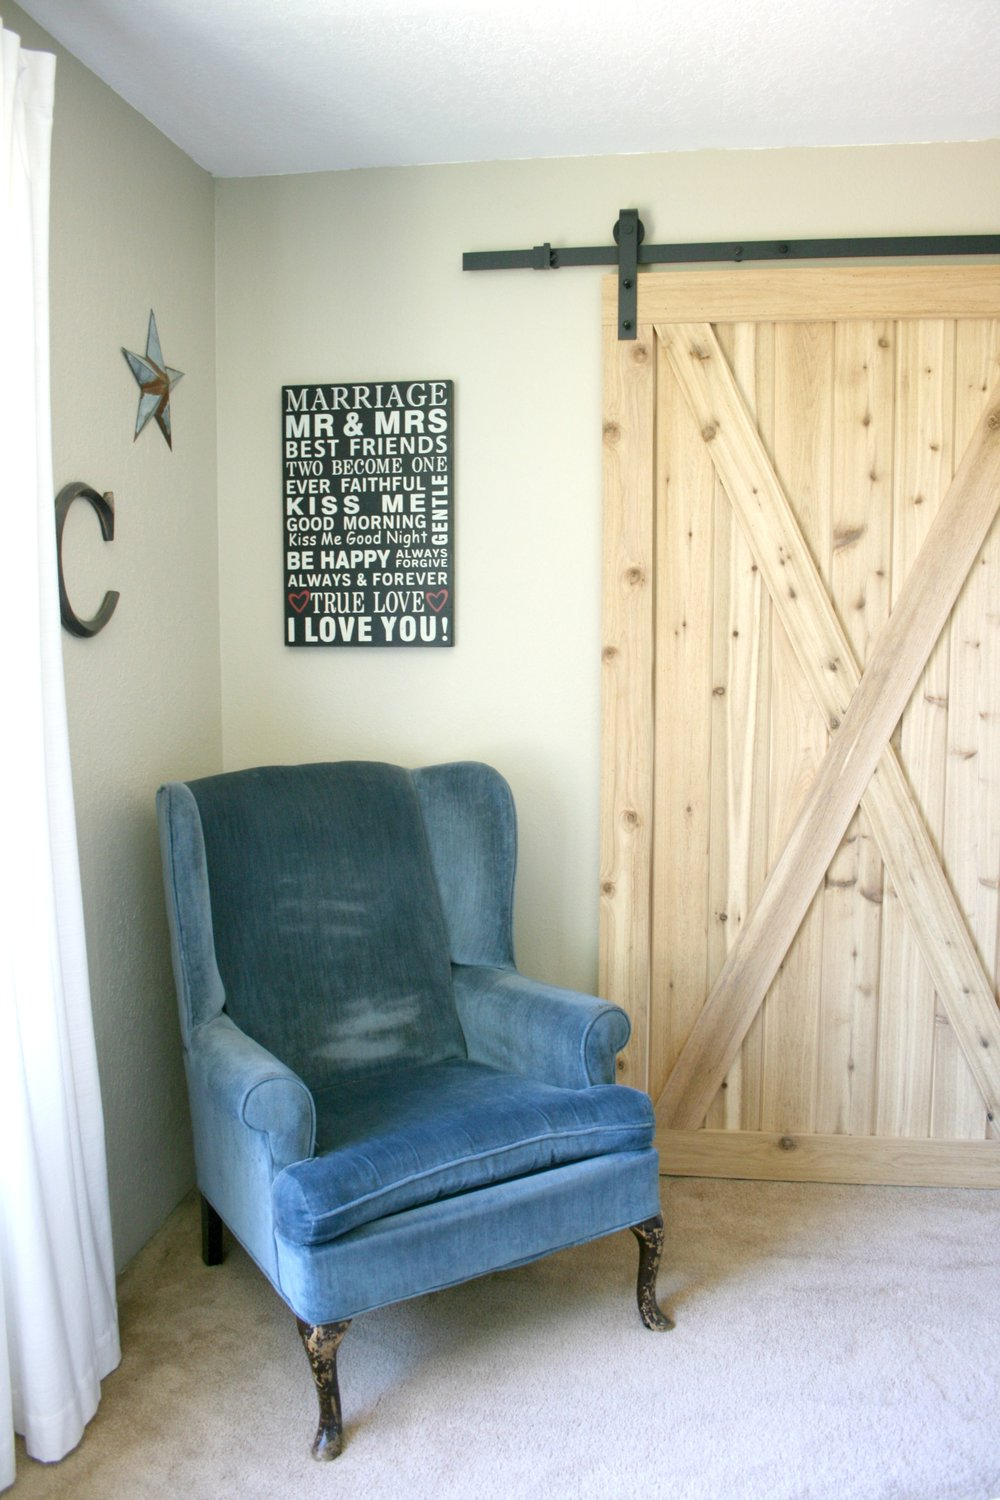 old blue chair and barn door.jpg